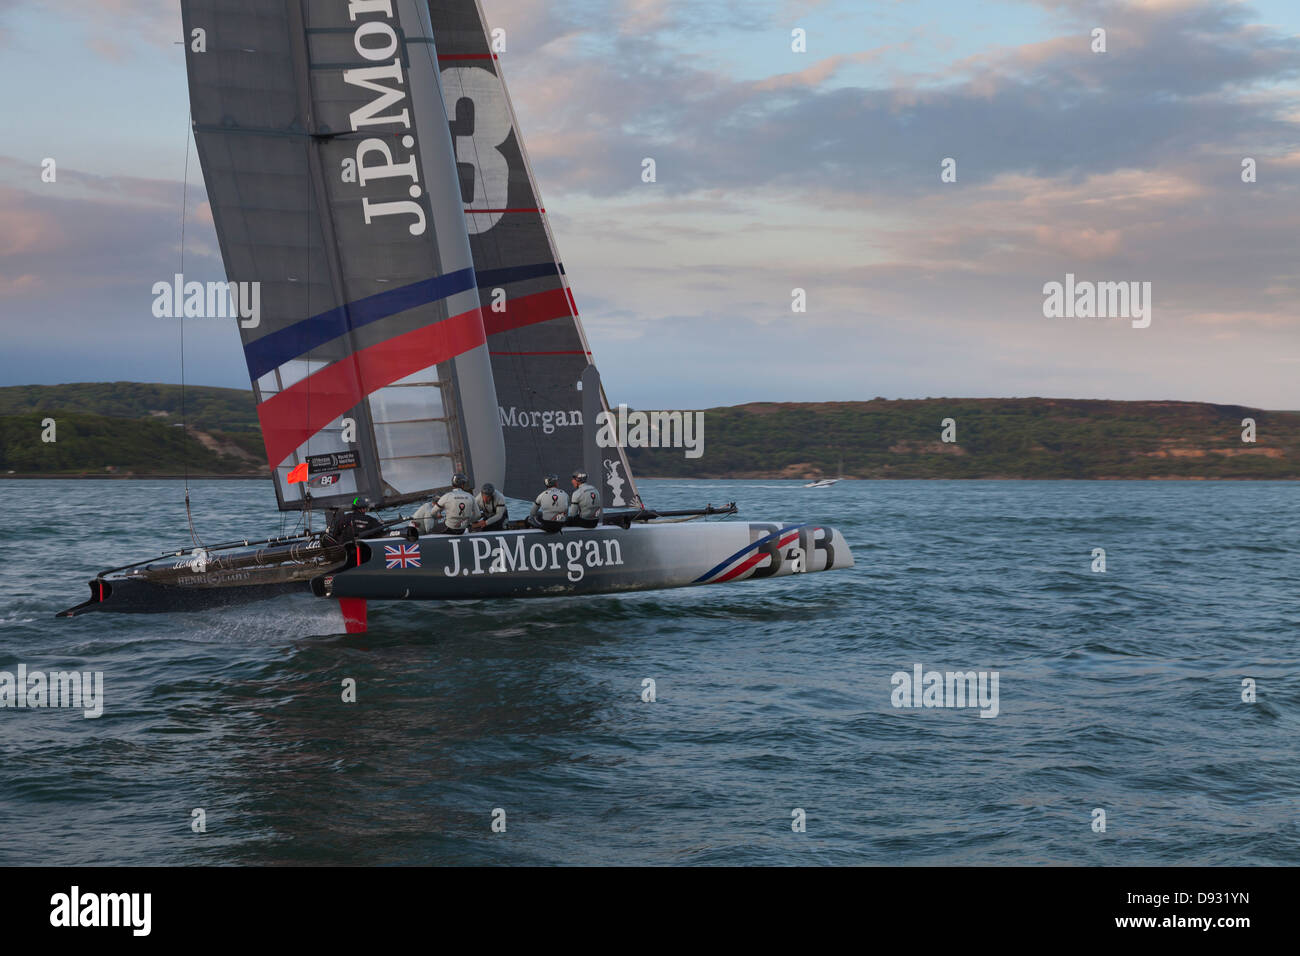 J.P.Morgan AC45 catamaran helmed by Ben Ainslie while sailing round the island race Isle of Wight UK - Stock Image